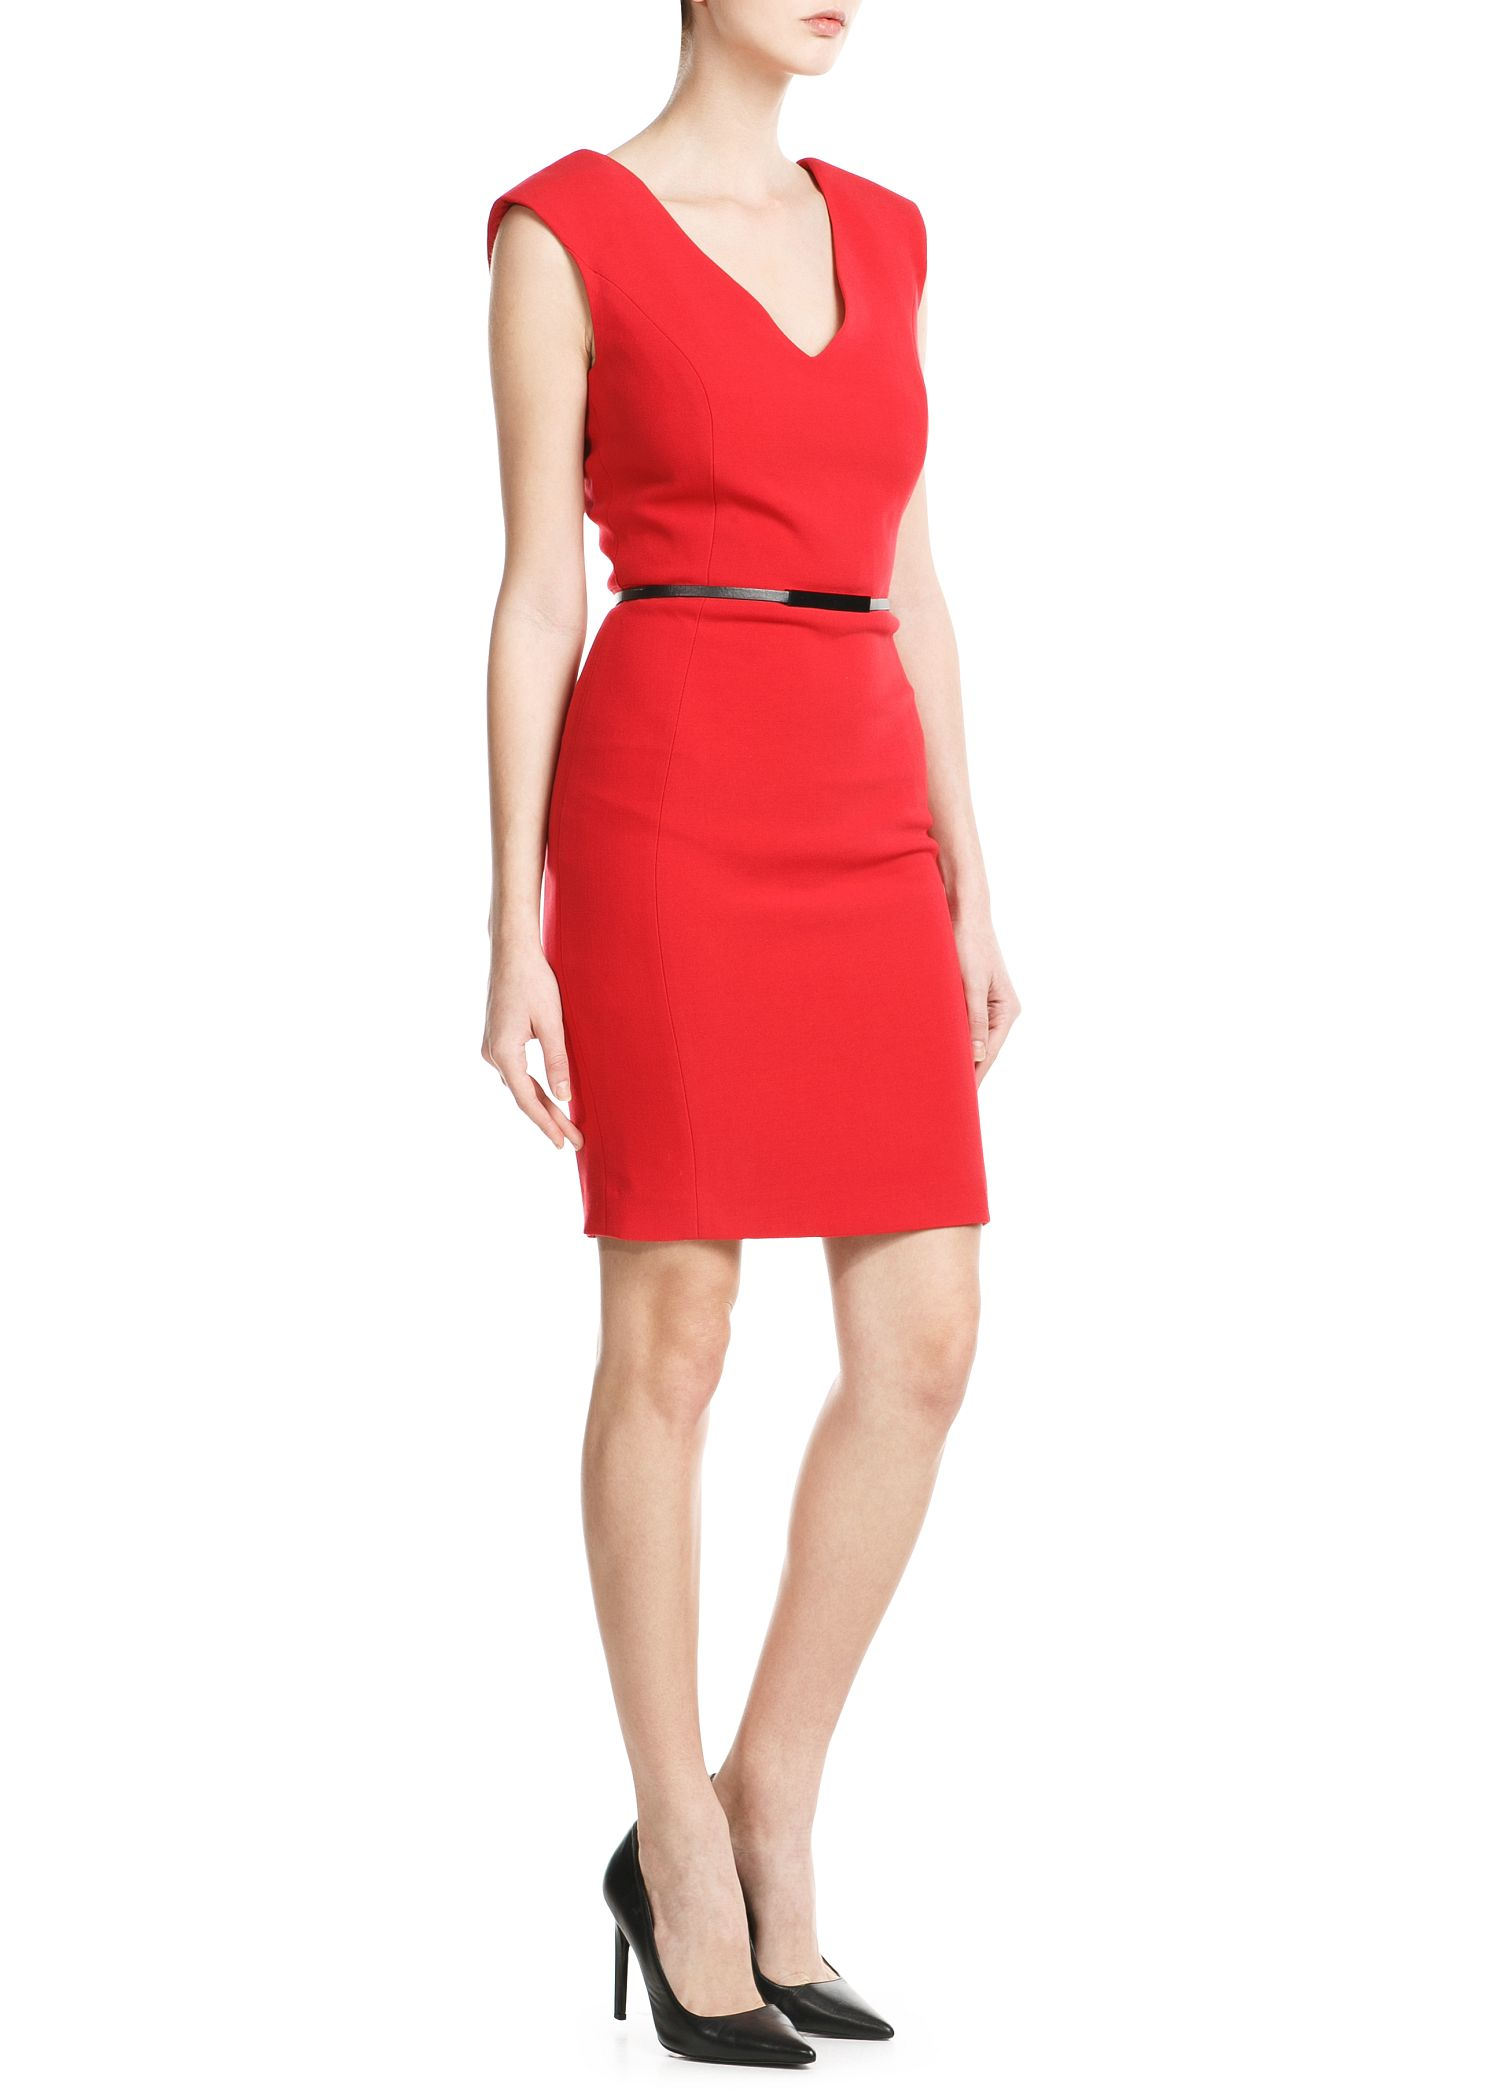 Mango Padded Shoulder Dress Red on oscar oasis videos